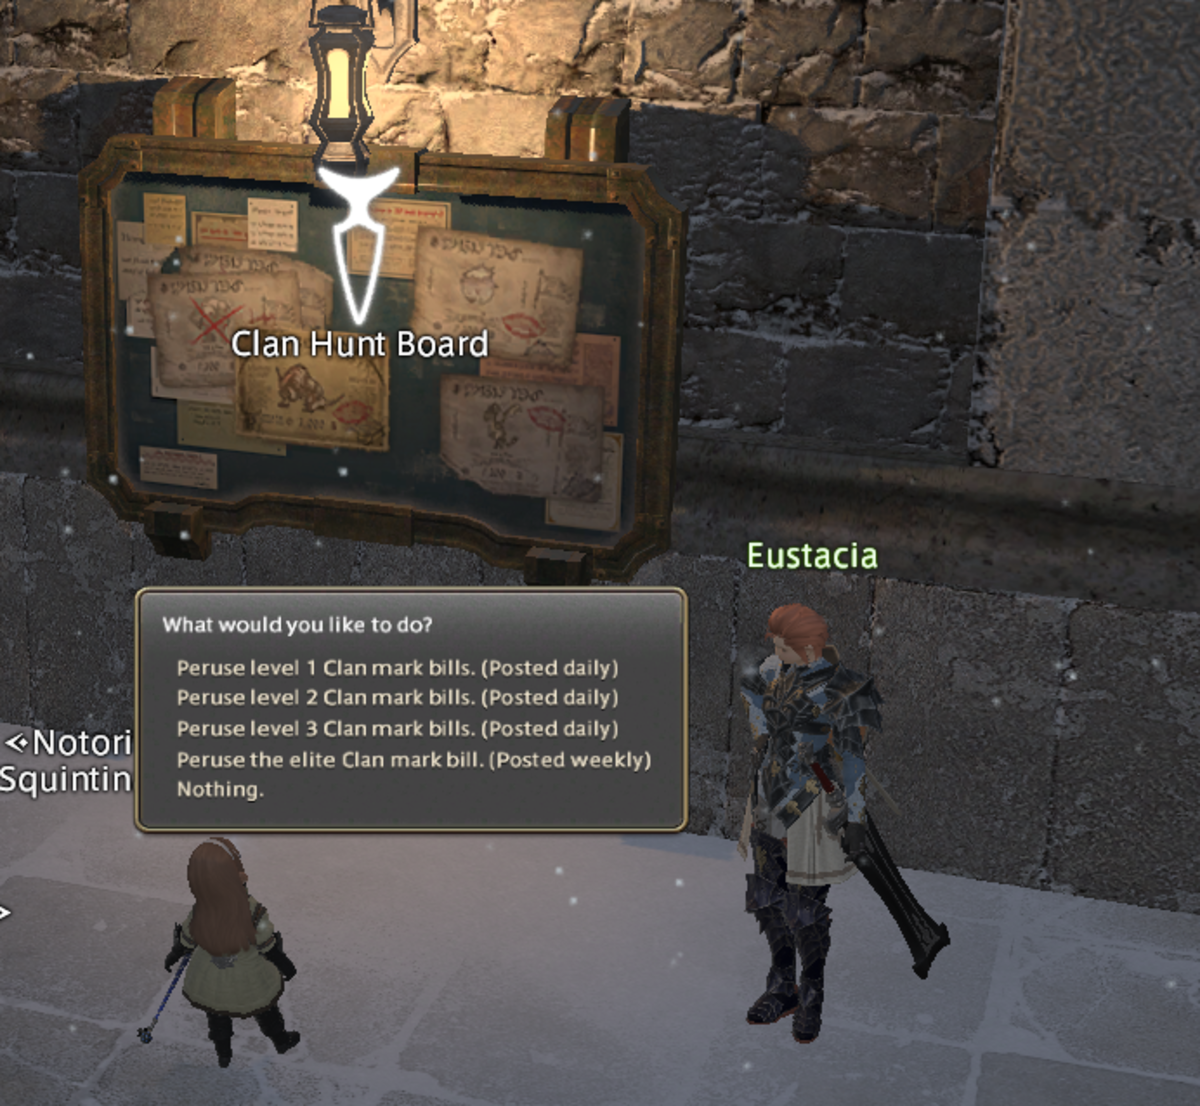 ff14-how-to-get-centurio-seals-and-what-are-they-used-for